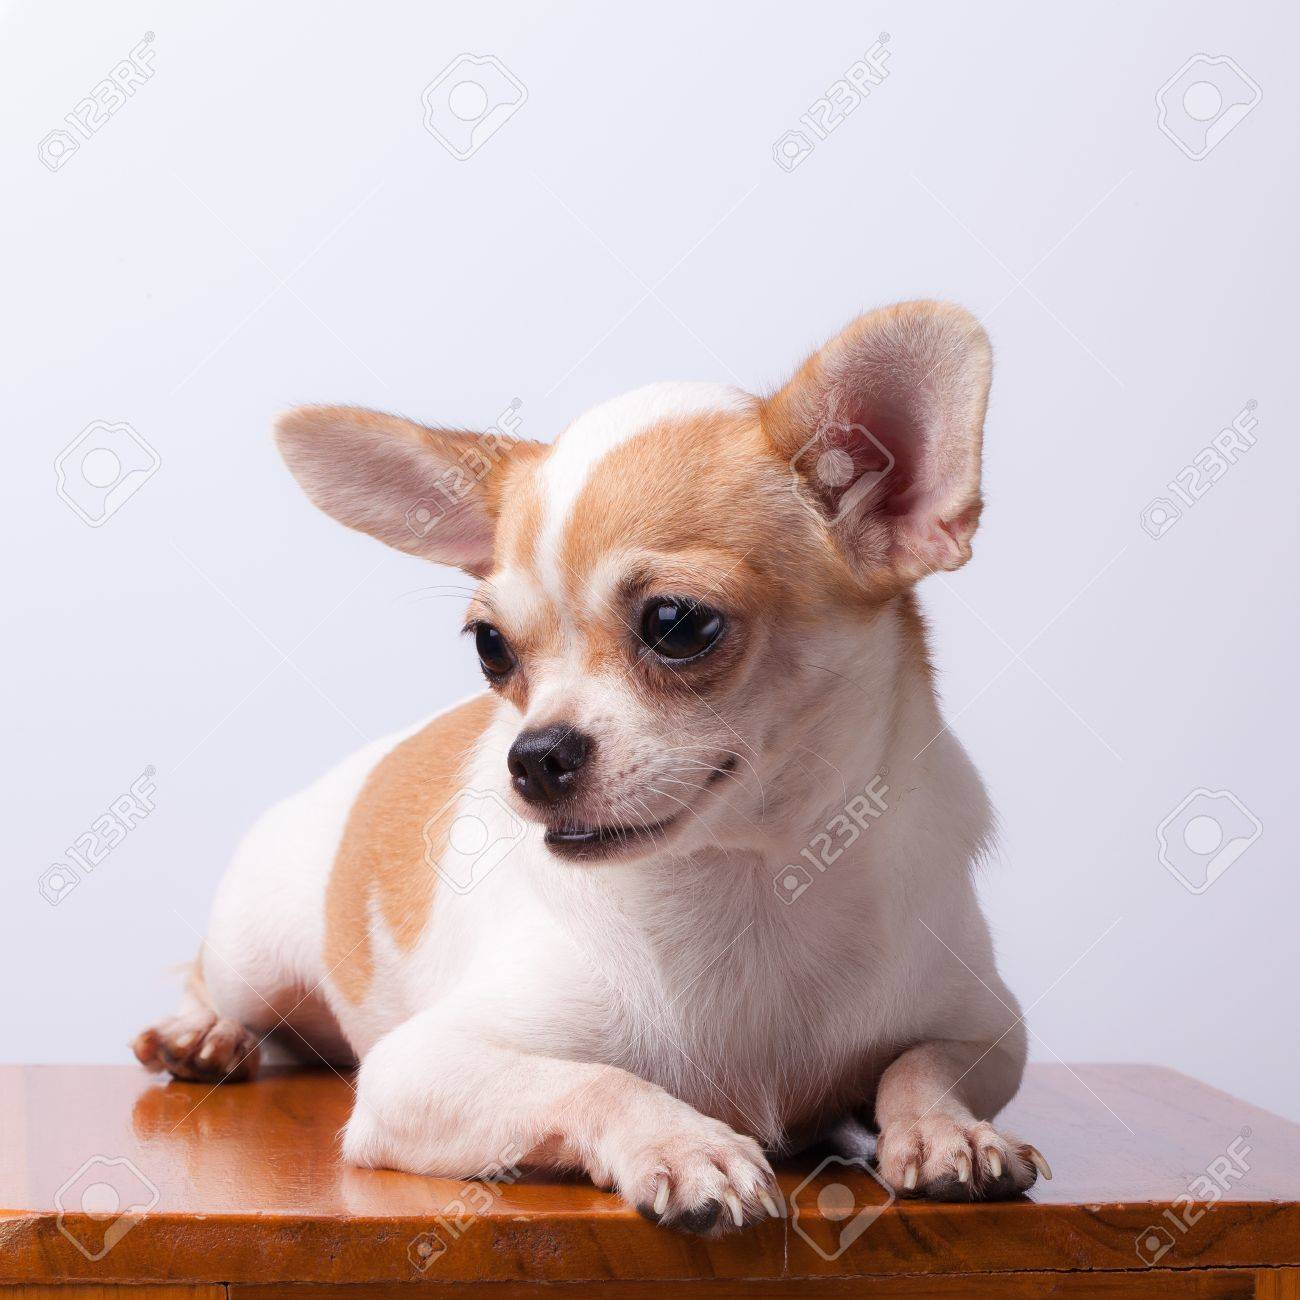 Small pure breed Chihuahua dogs white and fawn color